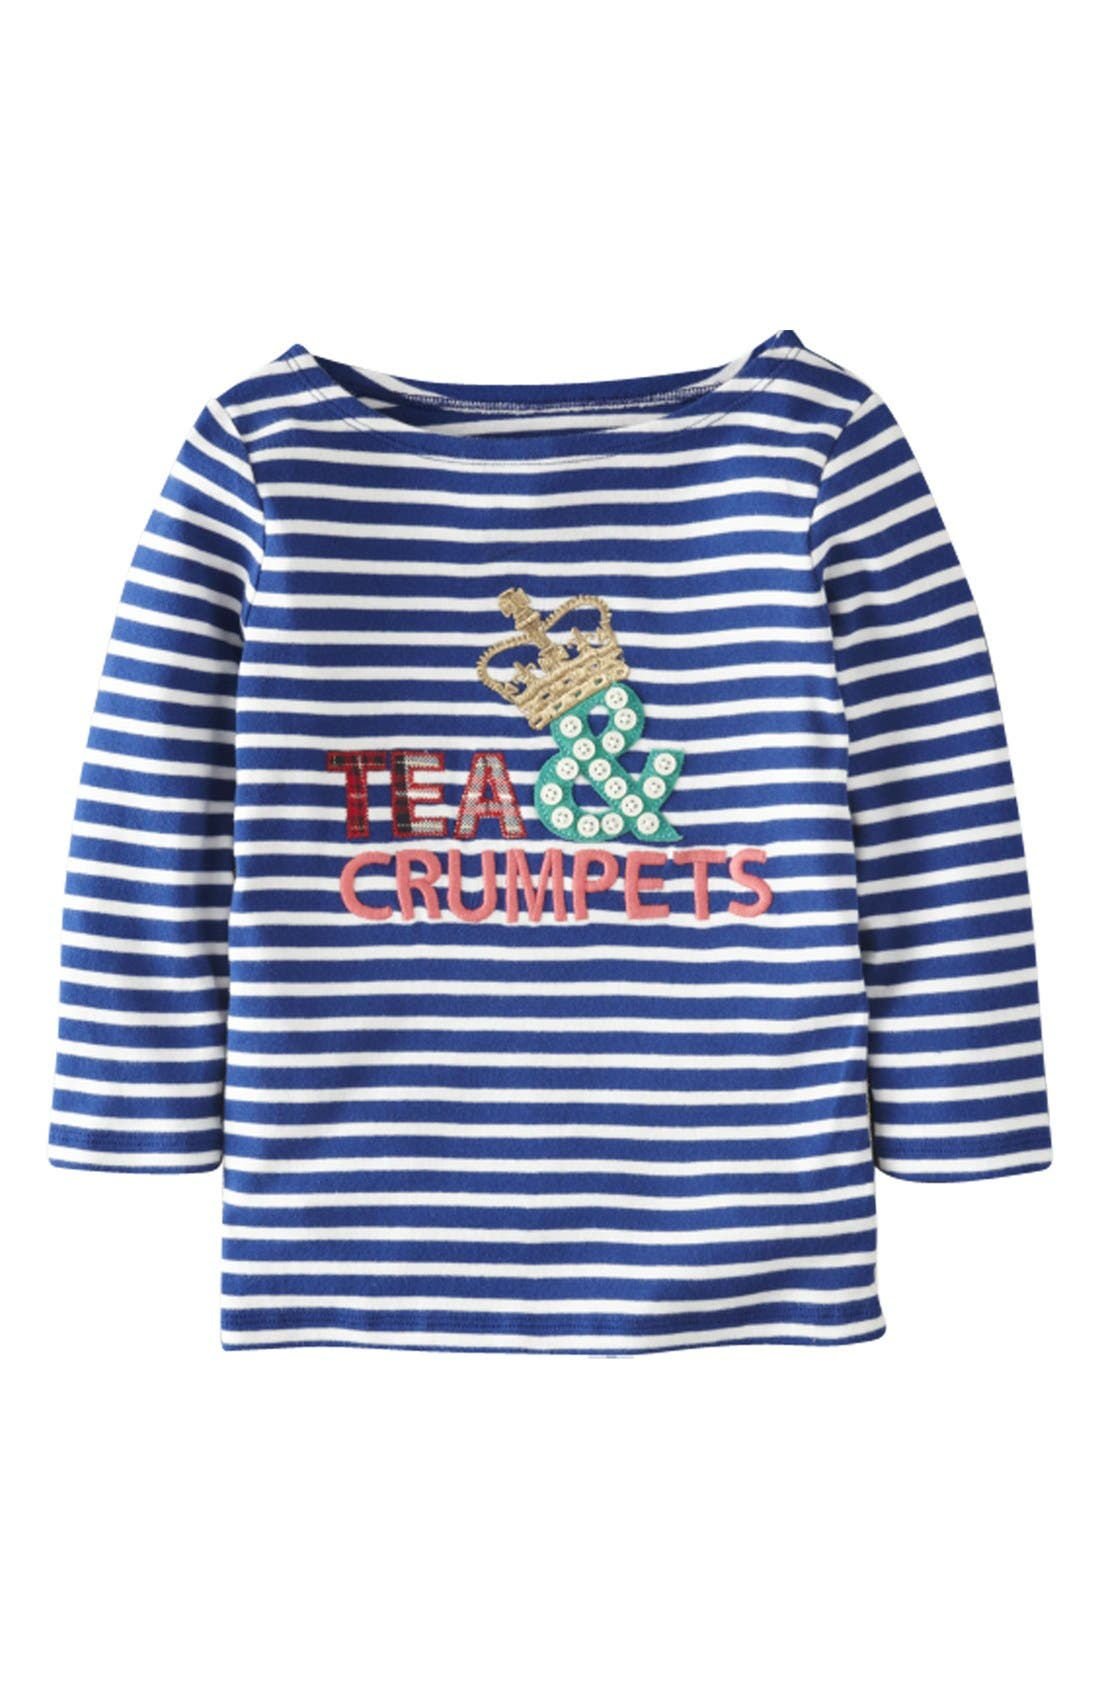 Alternate Image 1 Selected - Mini Boden 'Stripy' Appliqué' Boatneck Tee (Toddler Girls)